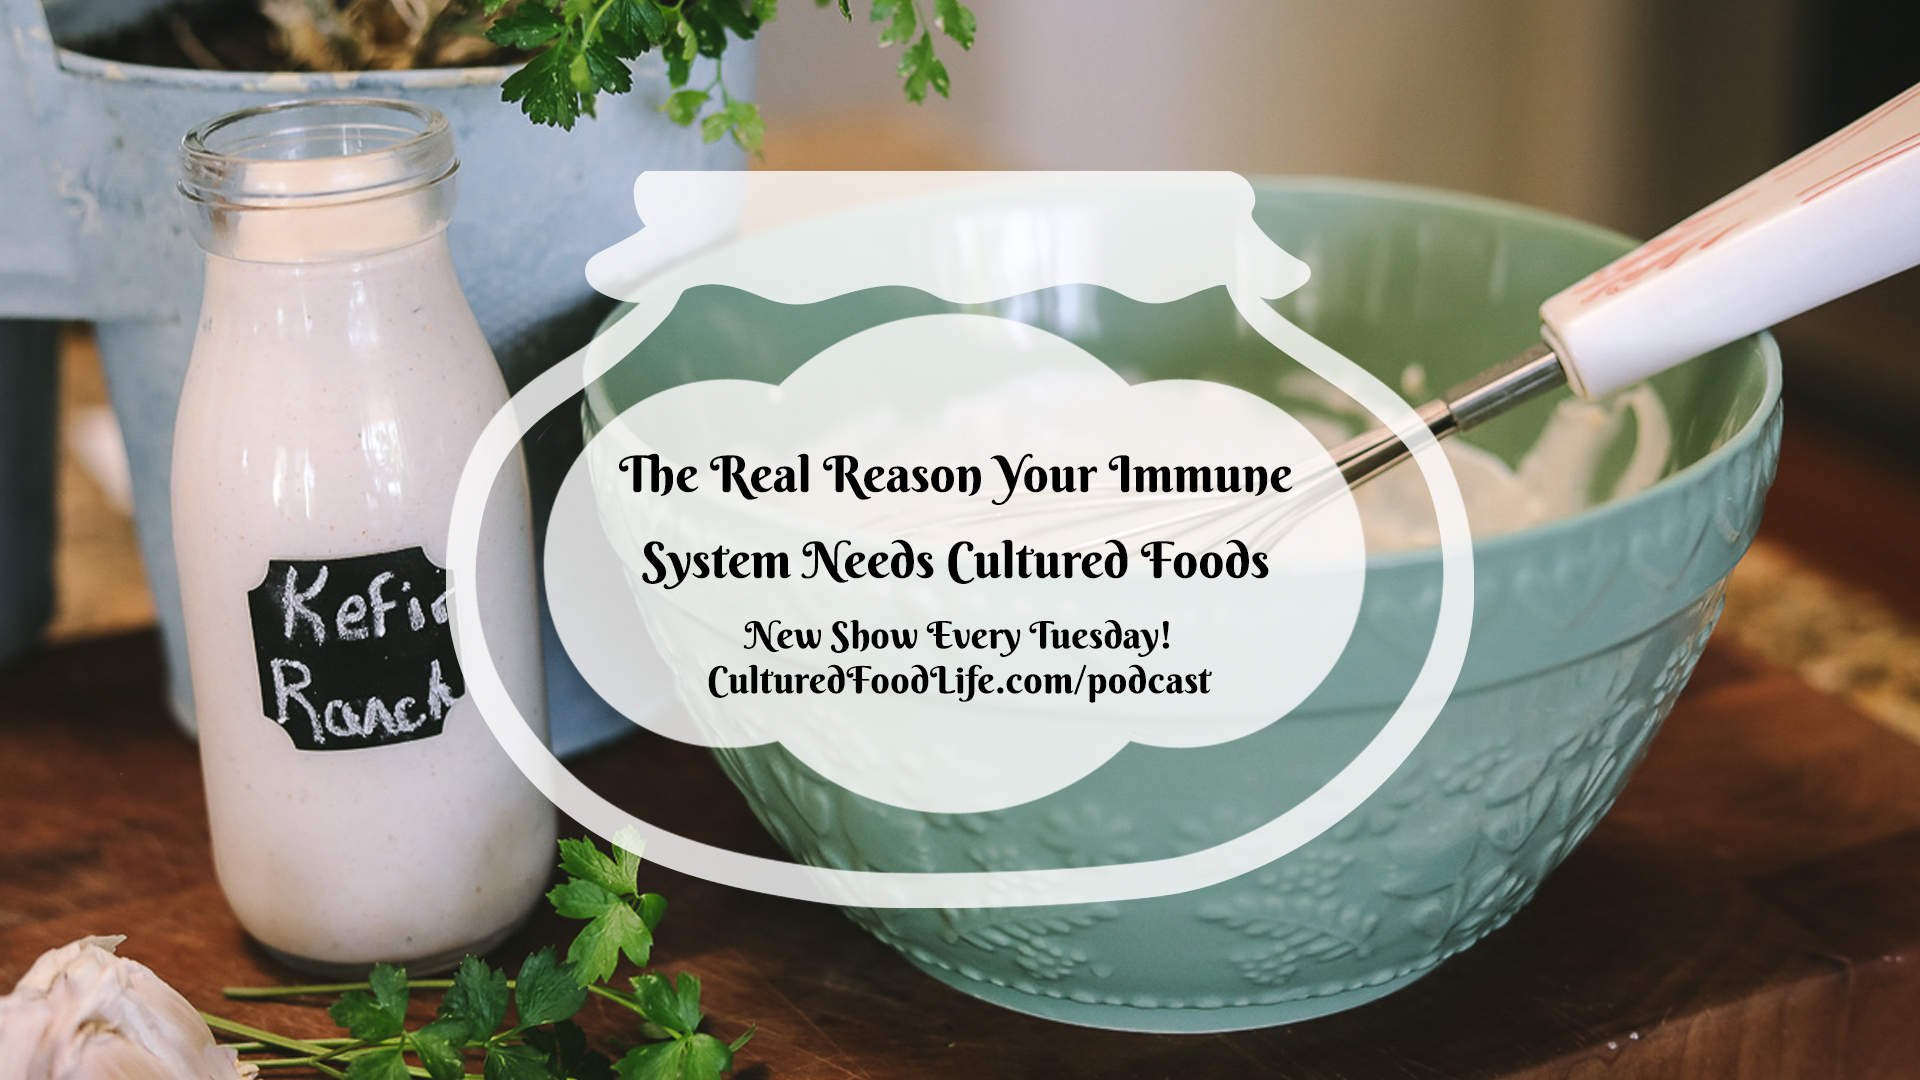 The Real Reason Your Immune System Needs Cultured Foods